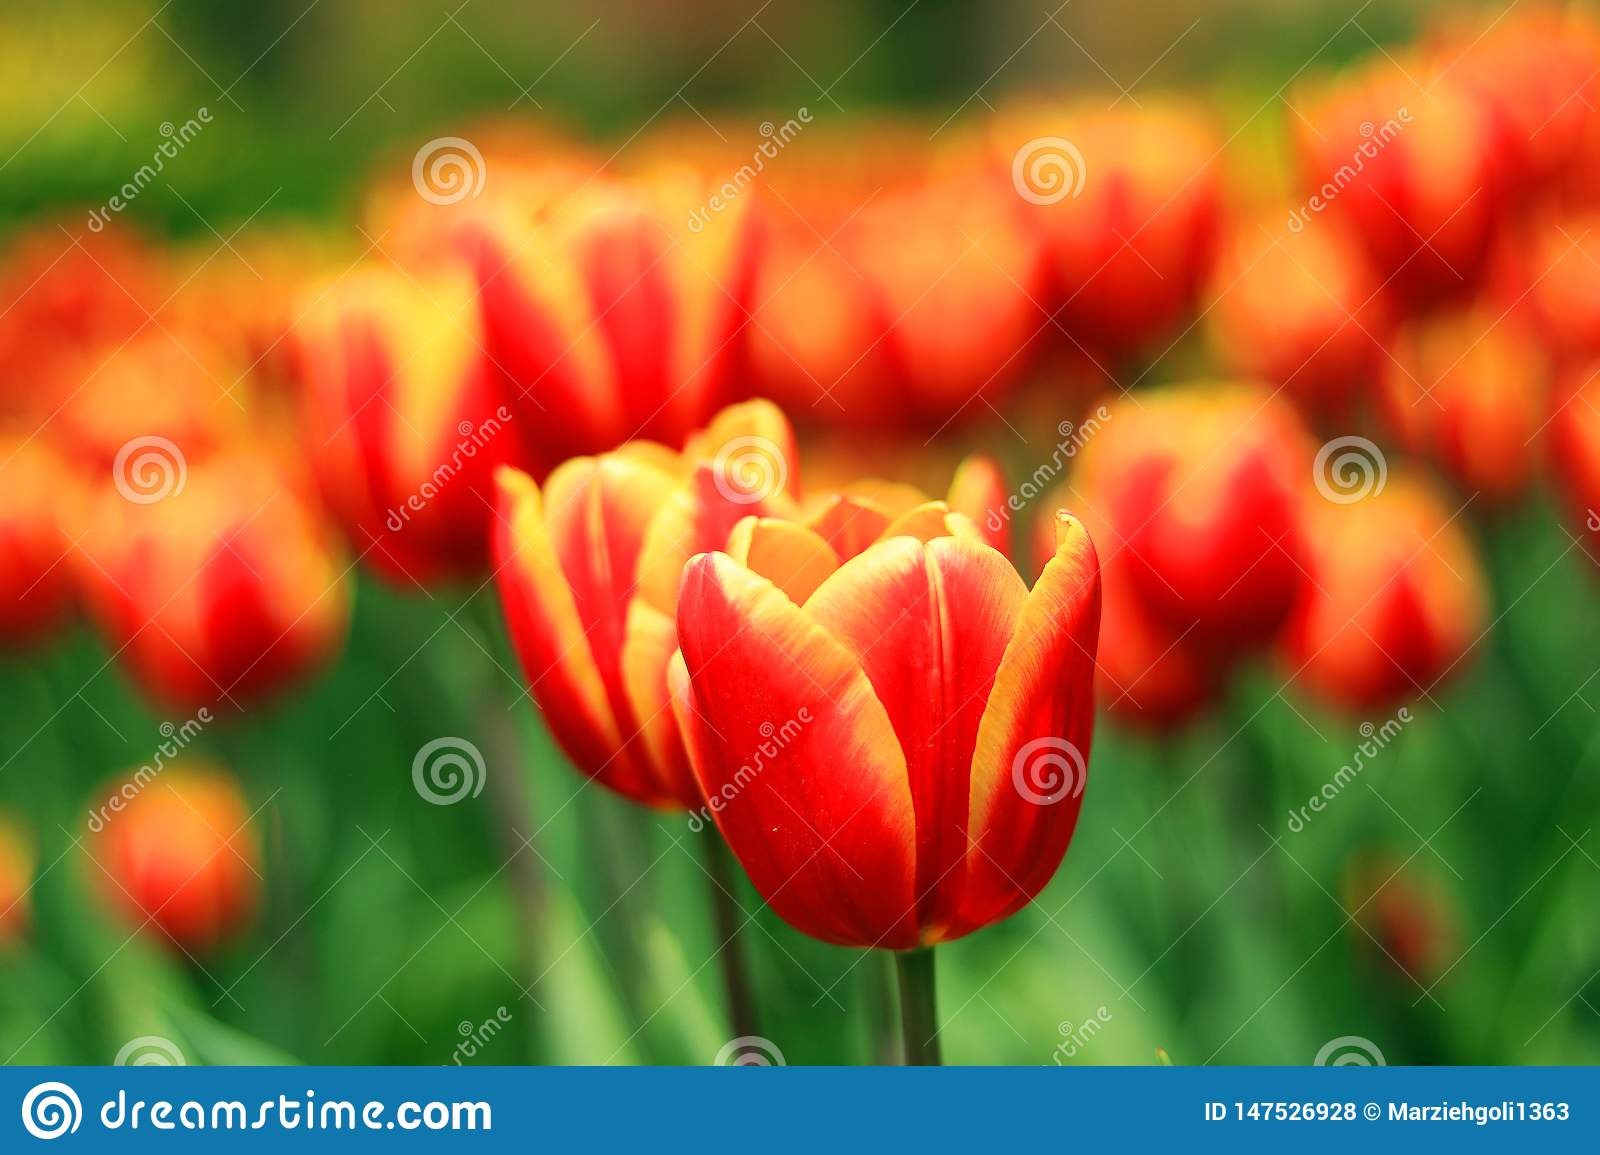 A beautiful Tulip flower in the garden